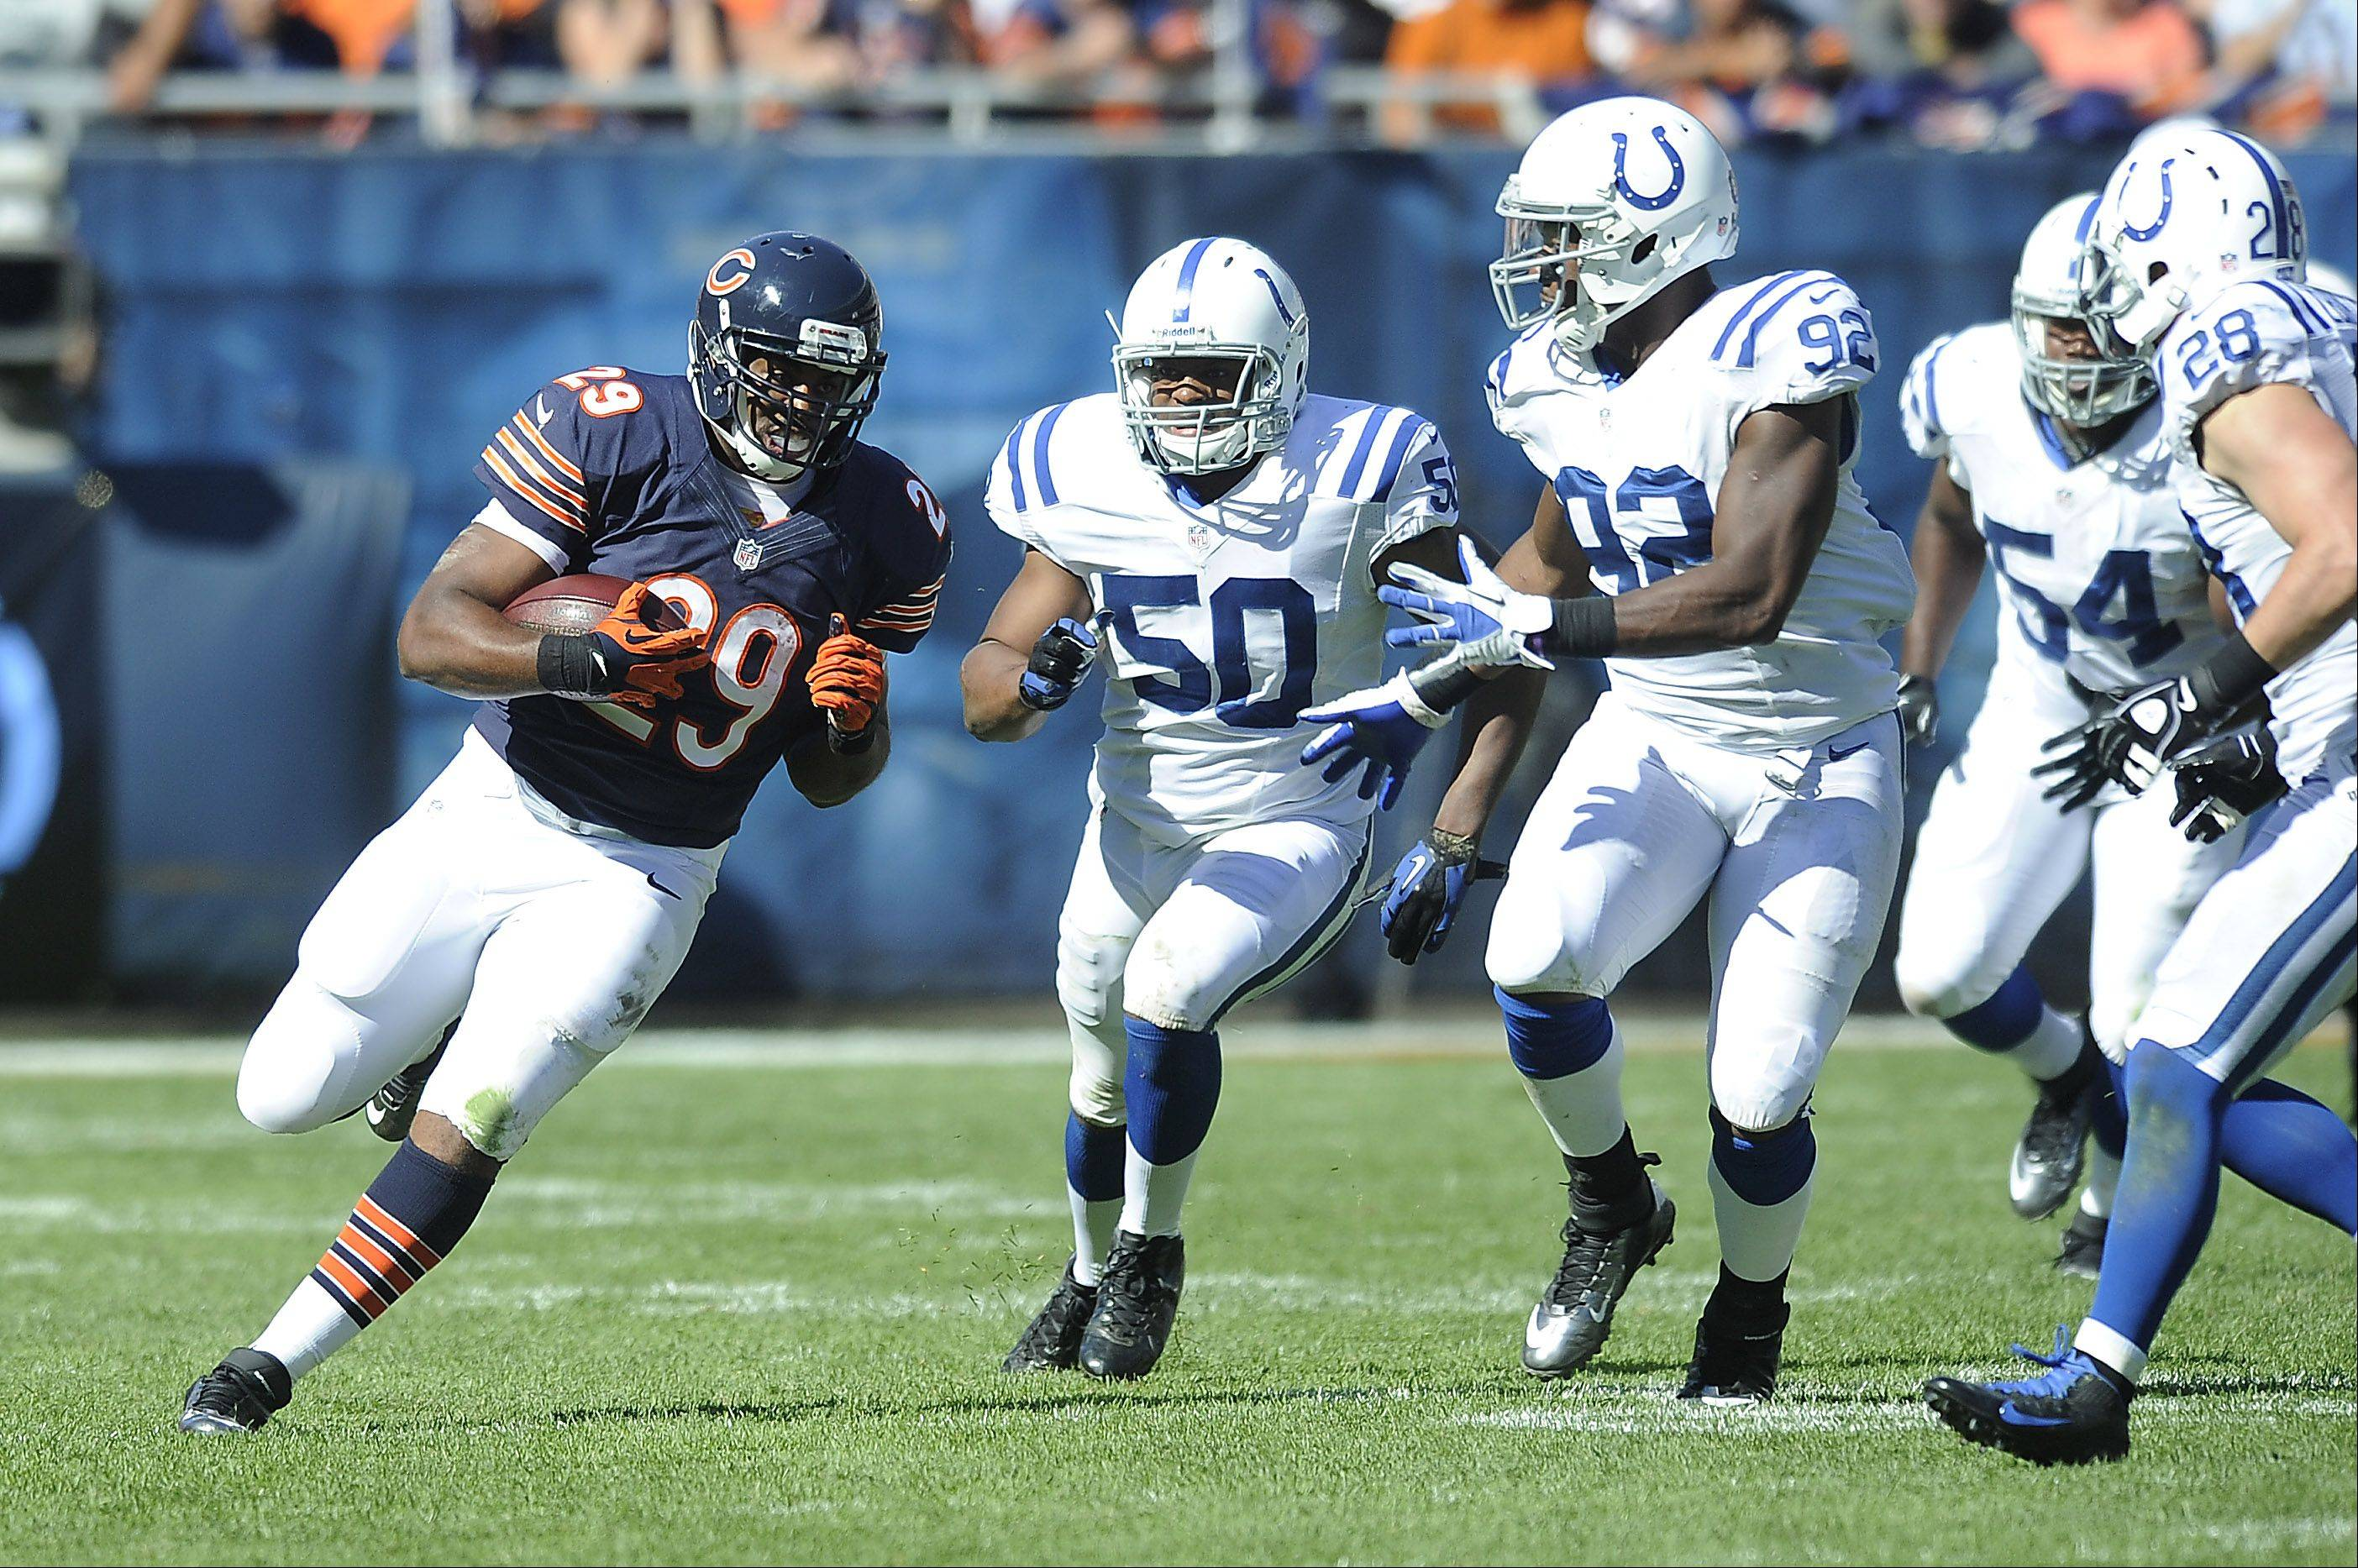 Chicago Bears Michael Bush runs for yardage in the 4th quarter despite pressure from the Colts defense in the Bears home opener at Soldier Field in Chicago.